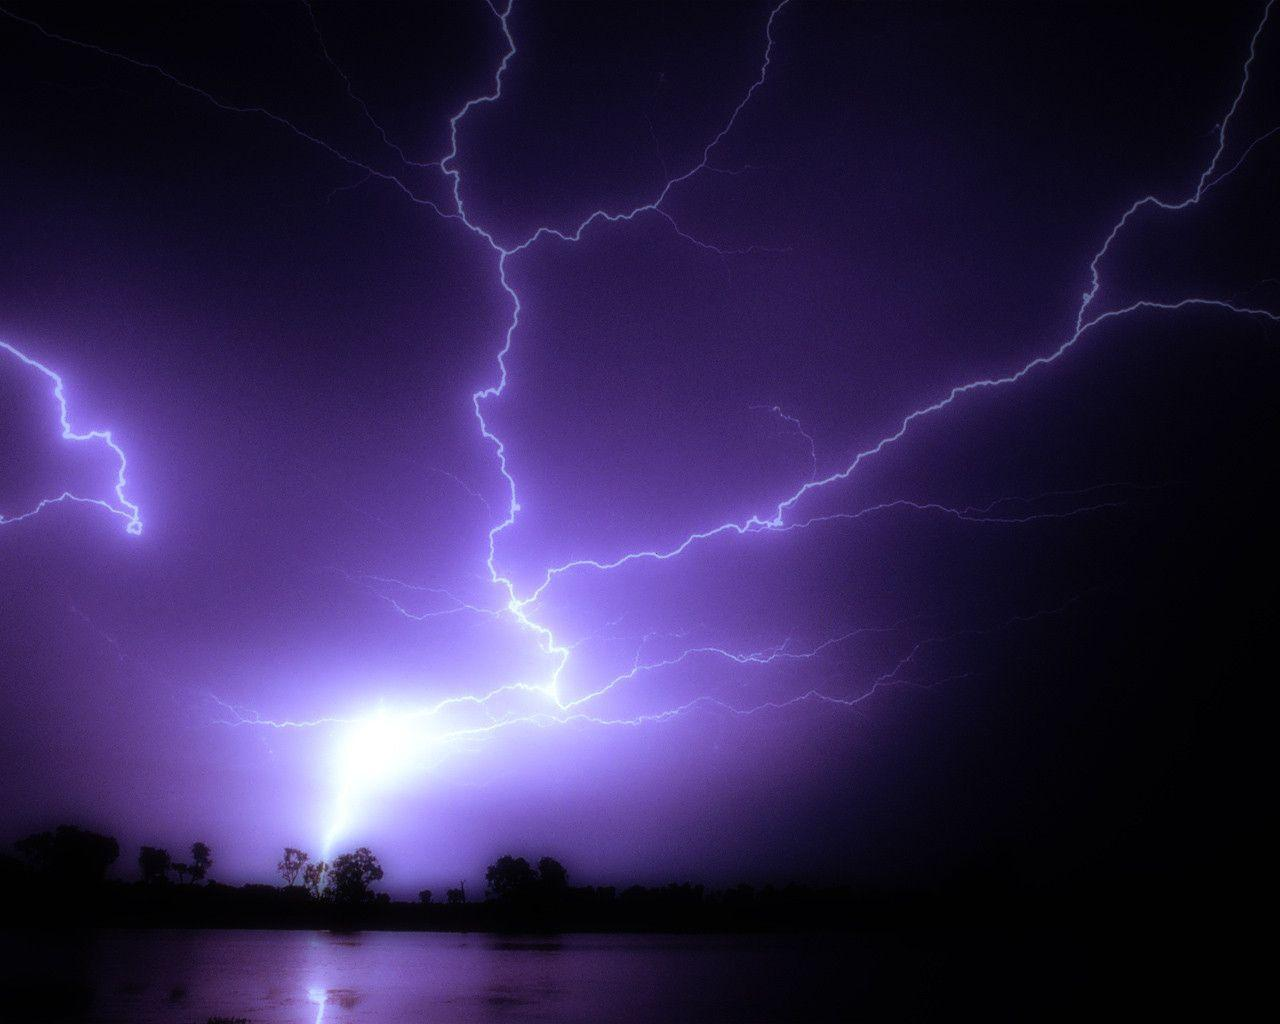 Wallpapers For > Purple Lightning Storm Wallpapers